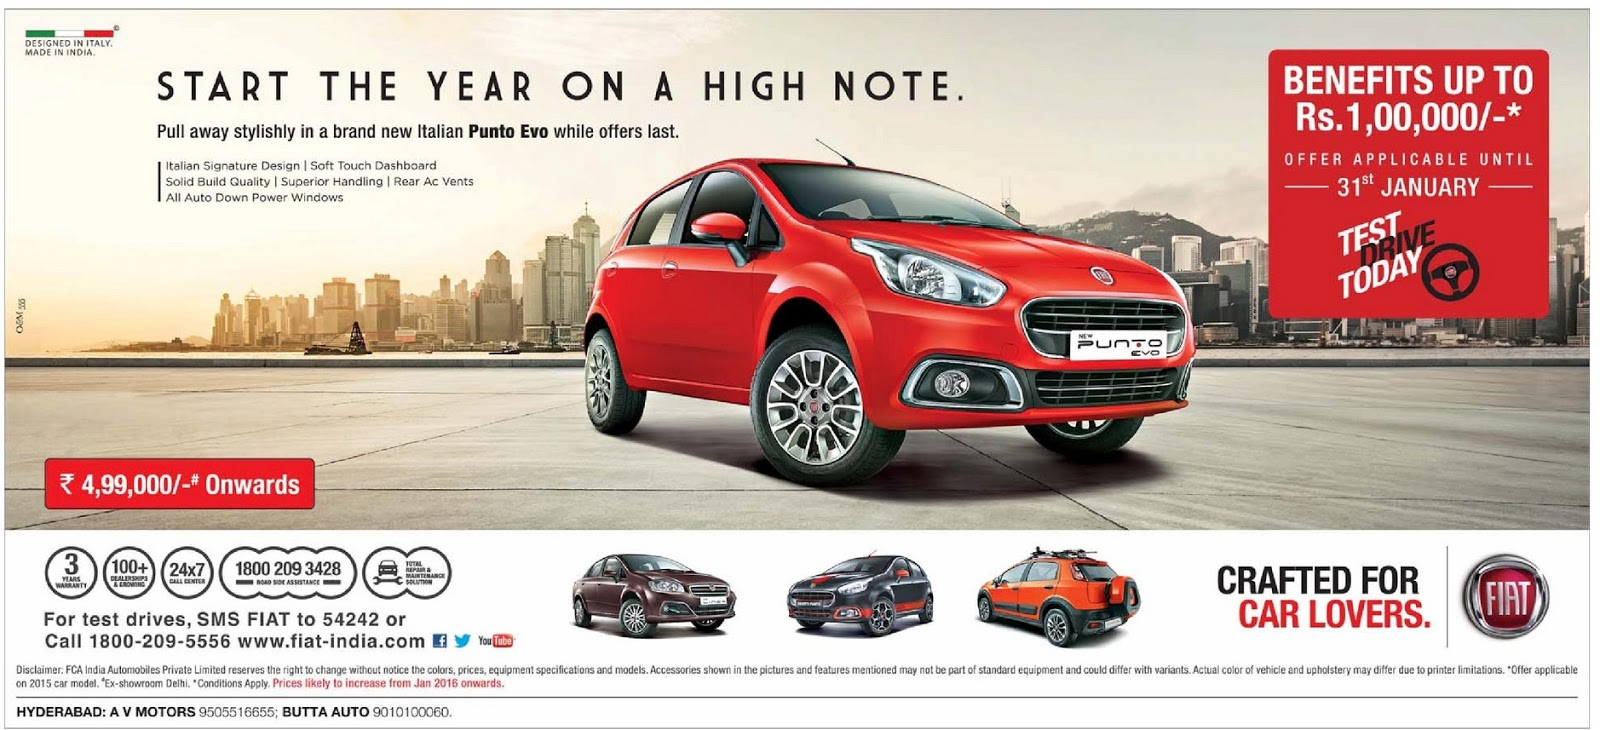 sporting punto j en grande front automobiles limited t fiat india wikiwand